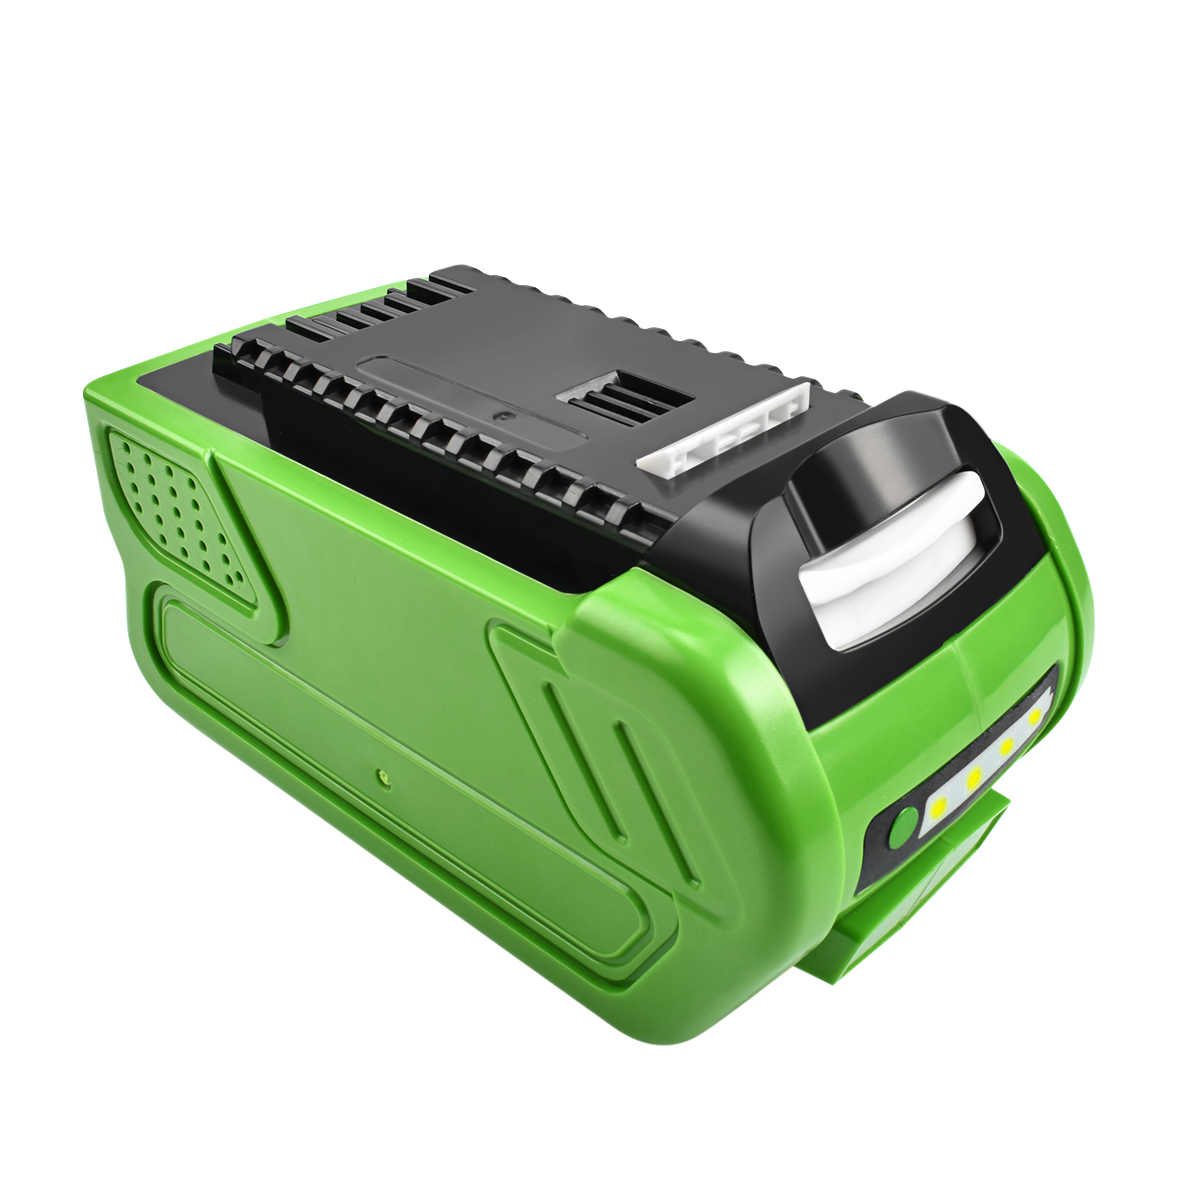 Bonacell For GreenWorks 29282 40V 6000mAh High Quality Rechargeable Li-ion Replacement 29462 29472 22272 29302 29662 29692 ToolsBonacell For GreenWorks 29282 40V 6000mAh High Quality Rechargeable Li-ion Replacement 29462 29472 22272 29302 29662 29692 Tools